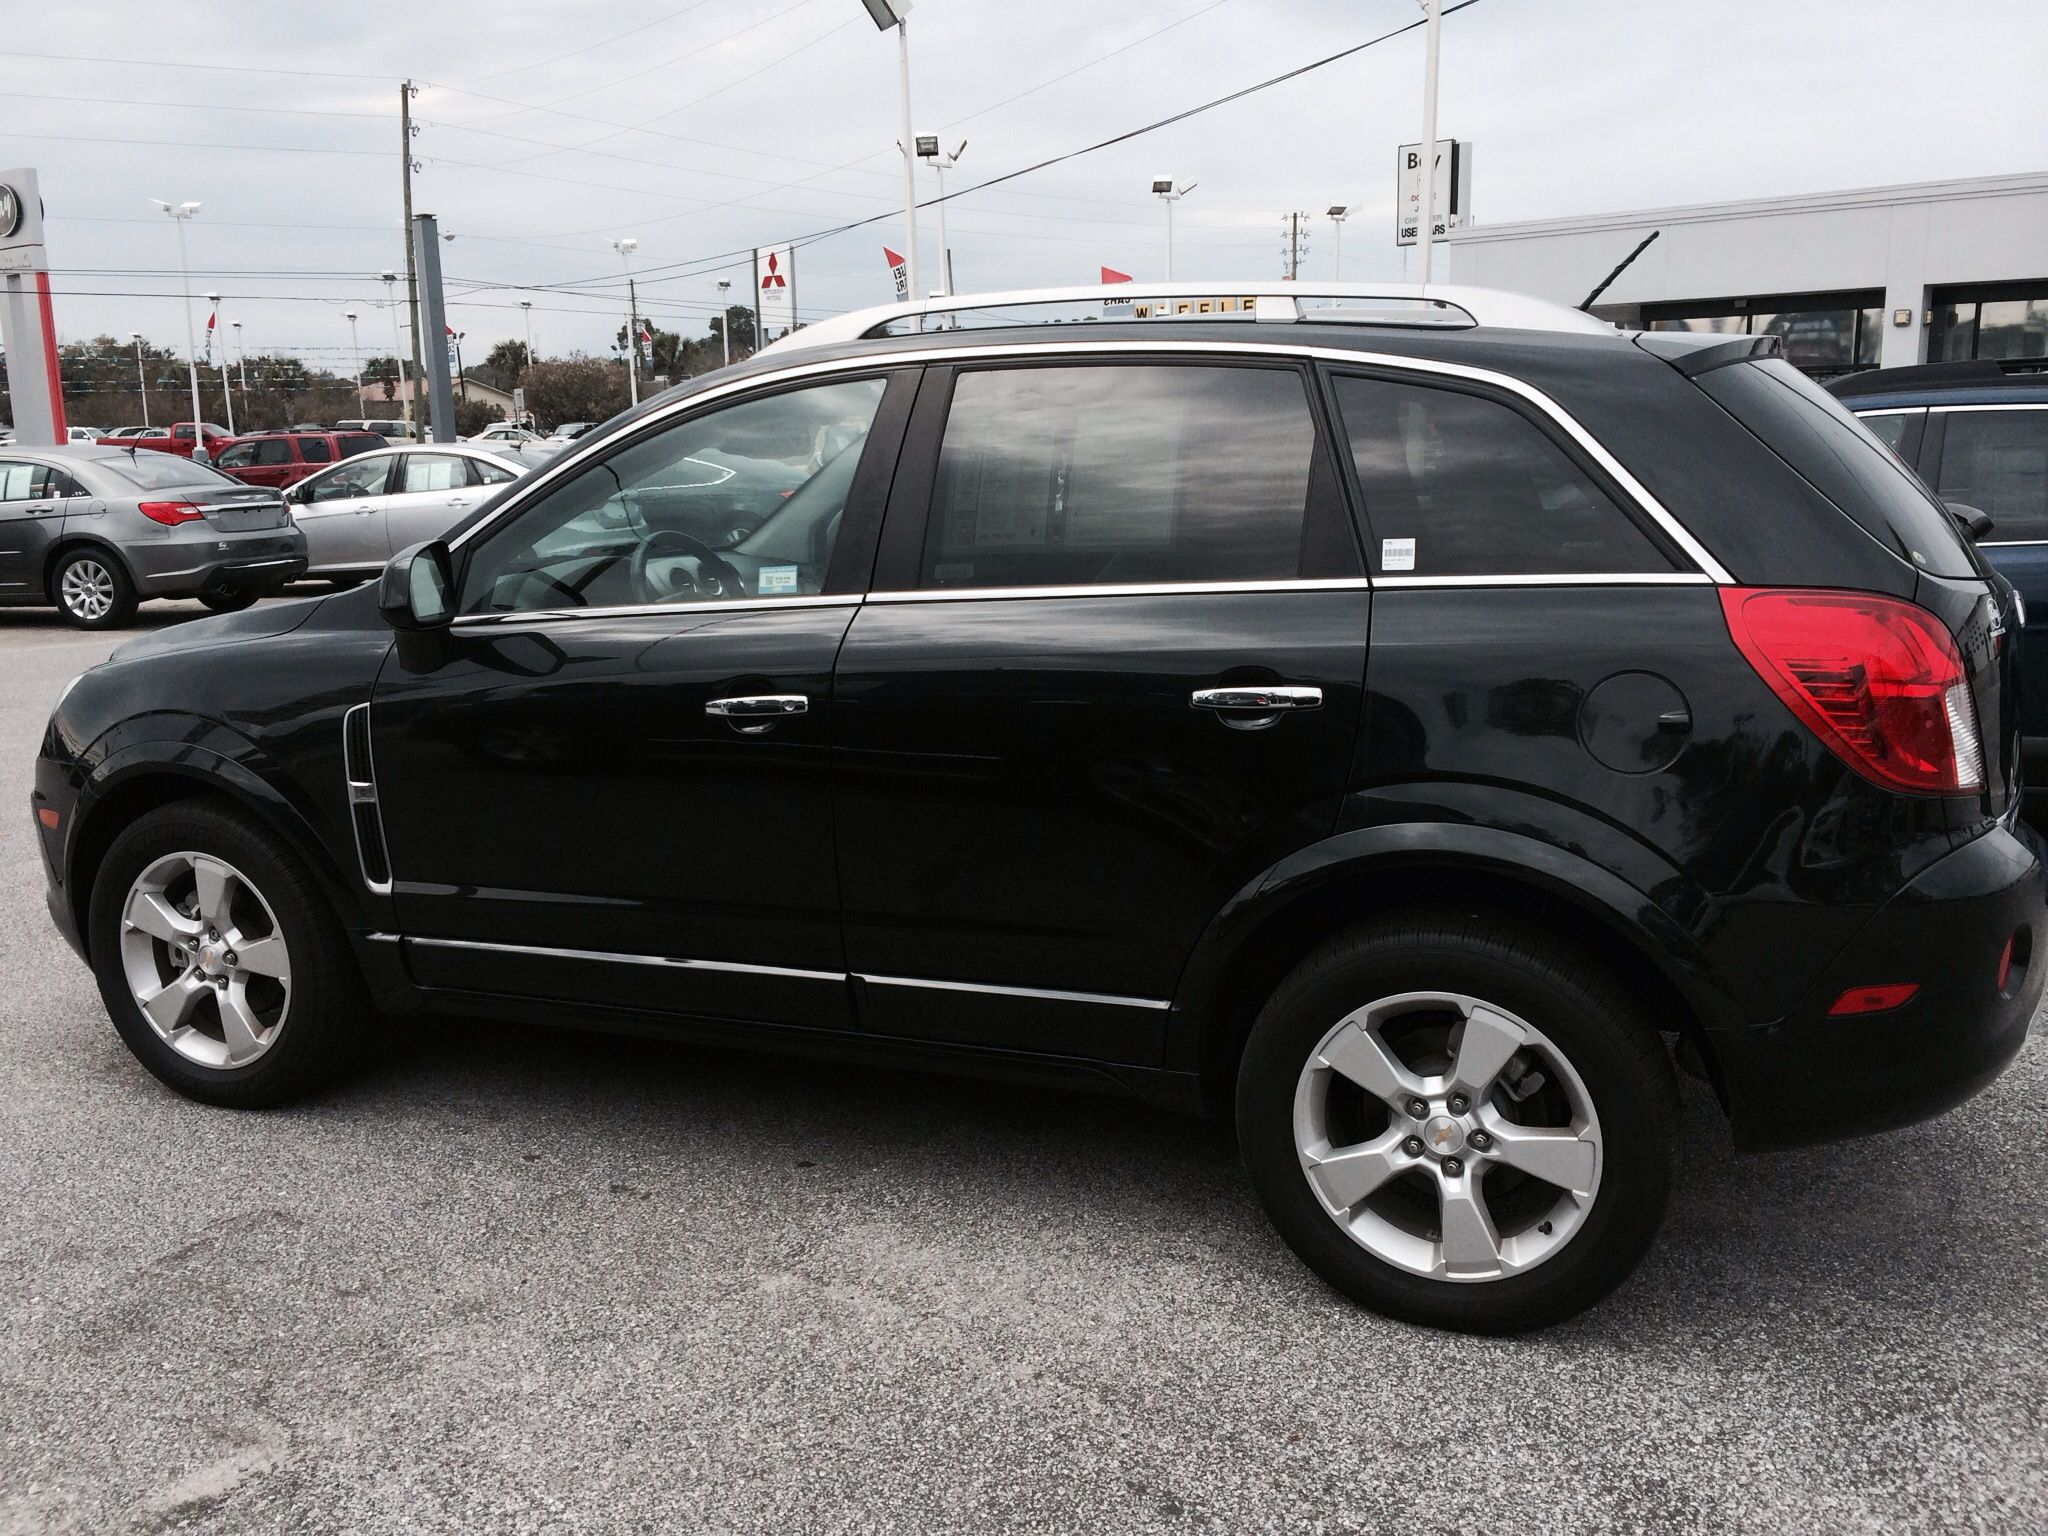 2013 chevy captiva sport ltz one owner less than 24k miles fully loaded including power. Black Bedroom Furniture Sets. Home Design Ideas